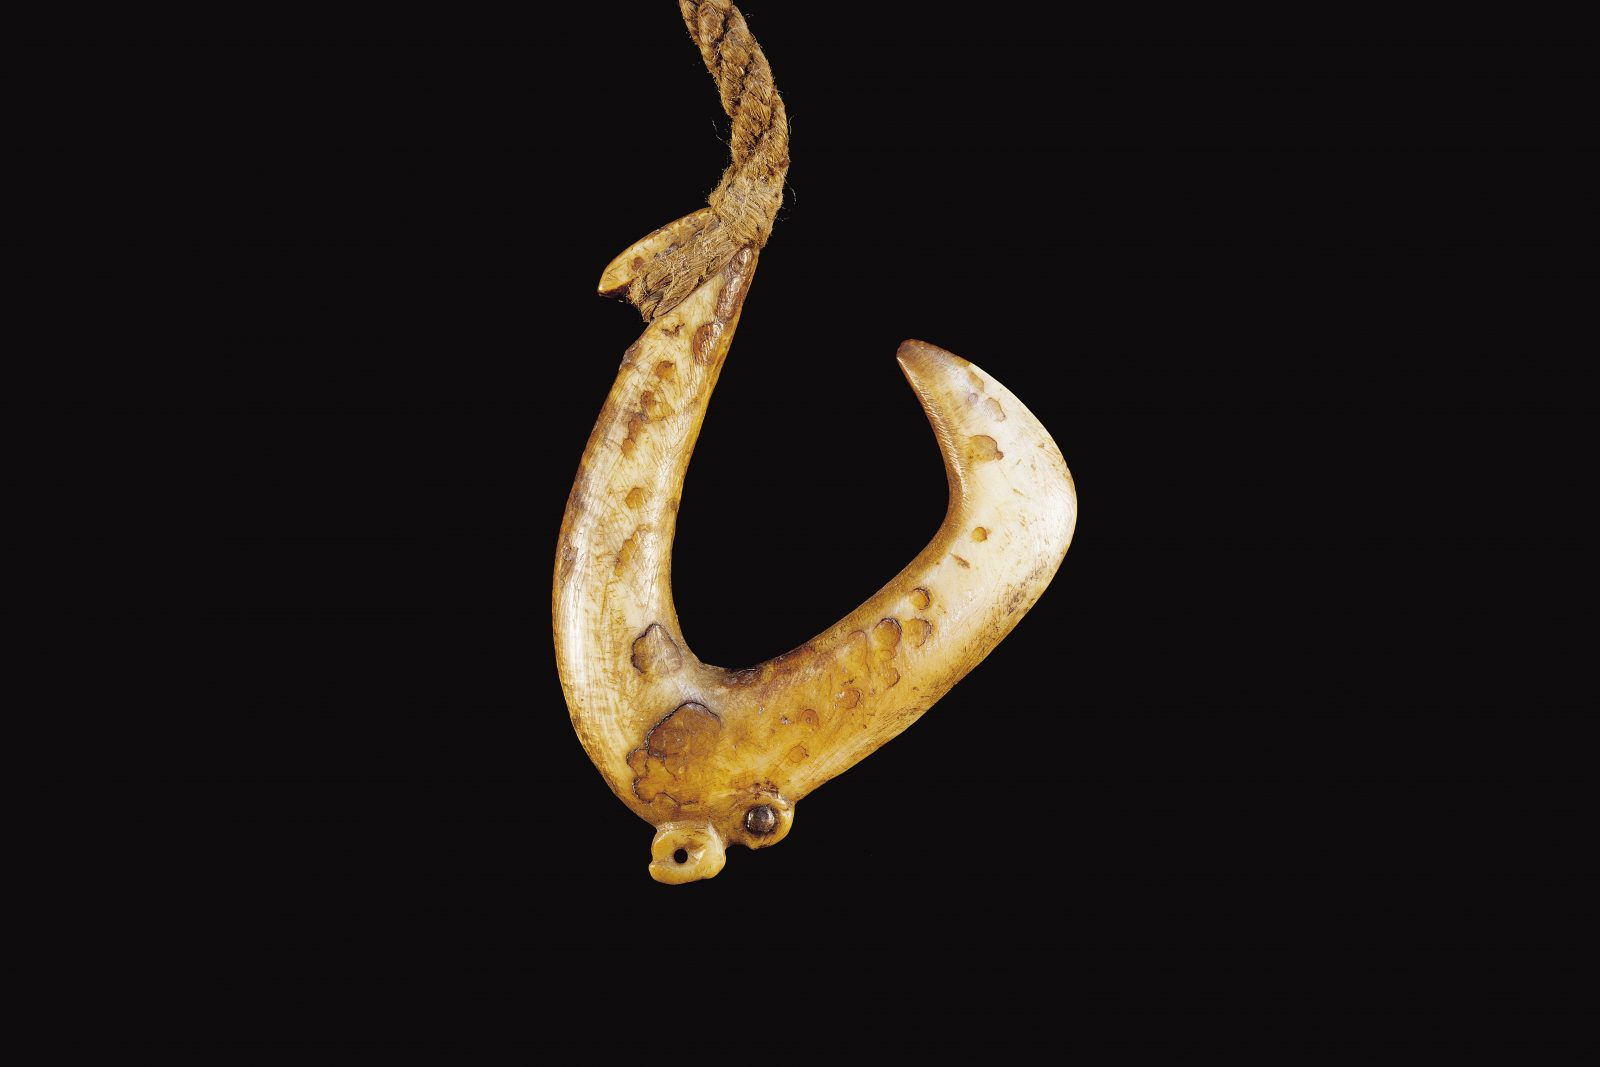 These were used to target large-mouthed bottom-dwelling fish such as snapper and blue cod. Because of the thickness of the bone, bait could not be threaded onto the hook as with a modern metal hook, and had to be tied in place with a short piece of twine attached to a small hole, groove or protrusion at the lower bend of the shank. (65 mm length)